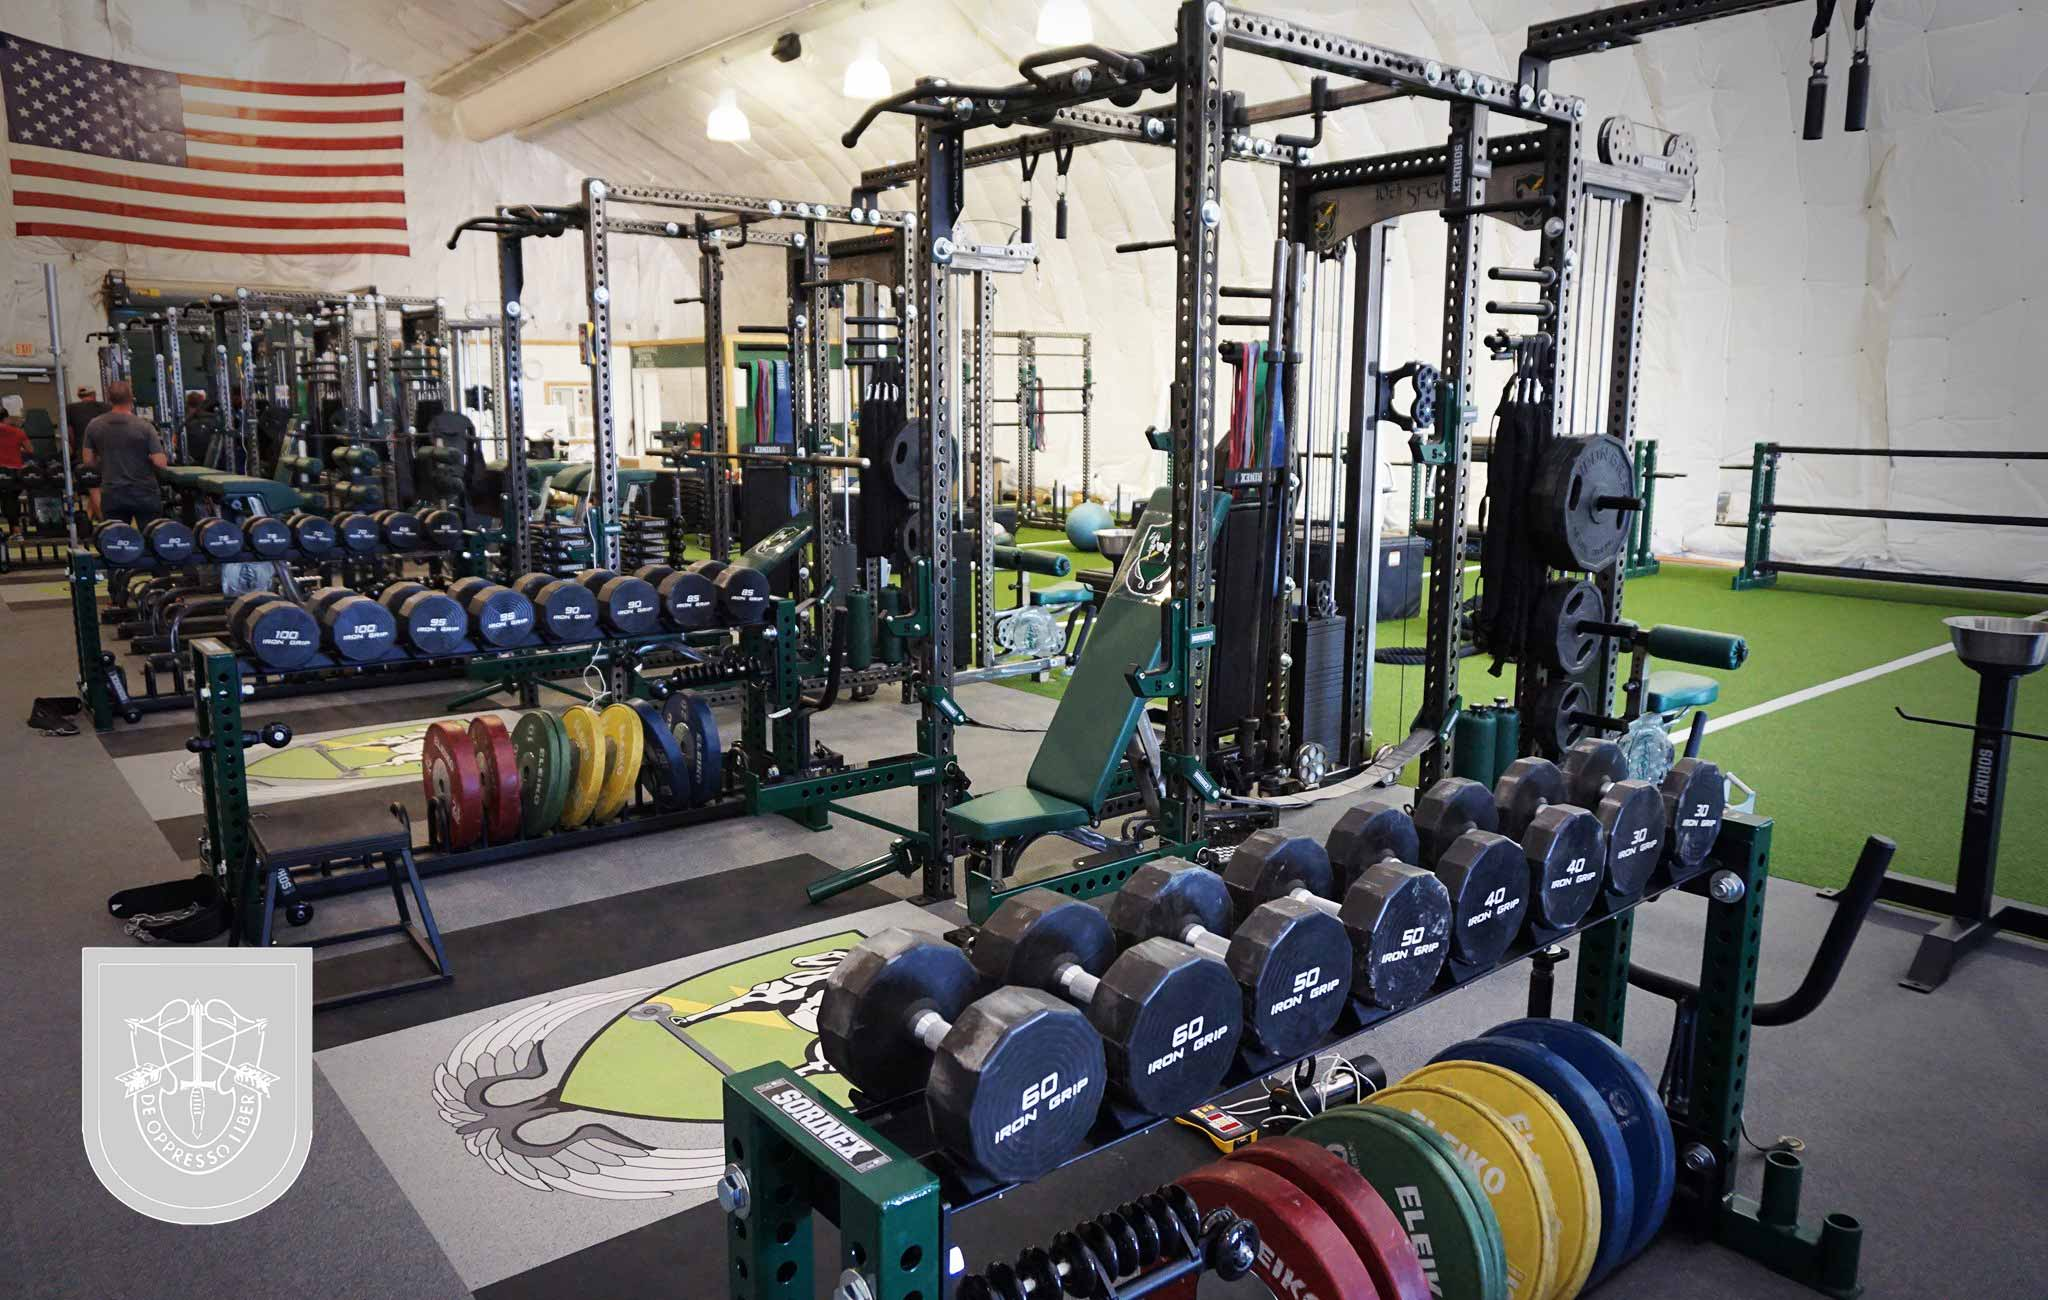 10th sfg Sorinex strength and conditioning facility